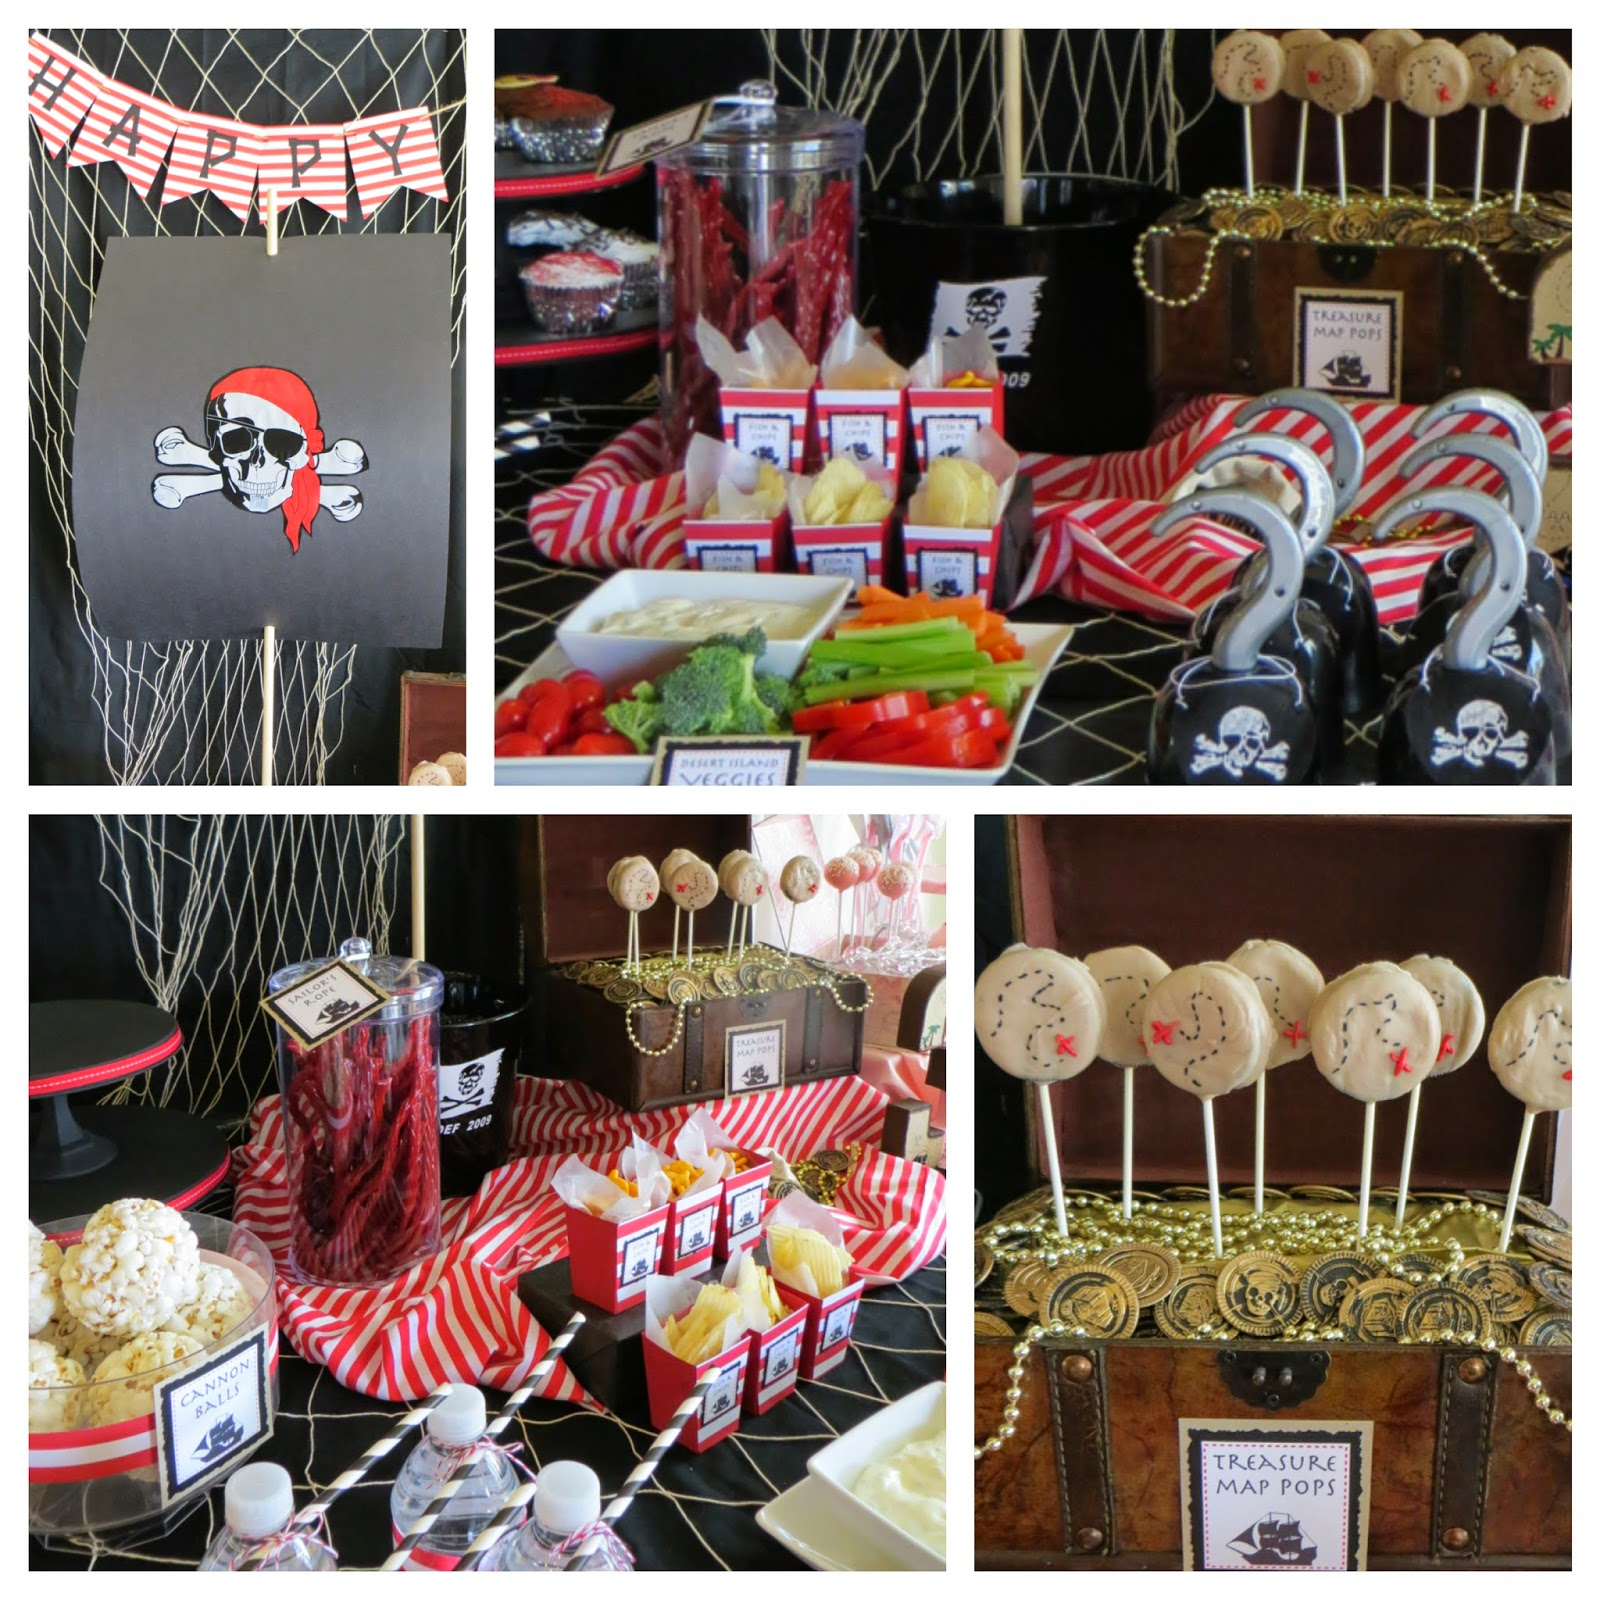 Kylie Mae's Party Ways: Once Upon a Time and a Yo Ho Ho! Pirate and ...